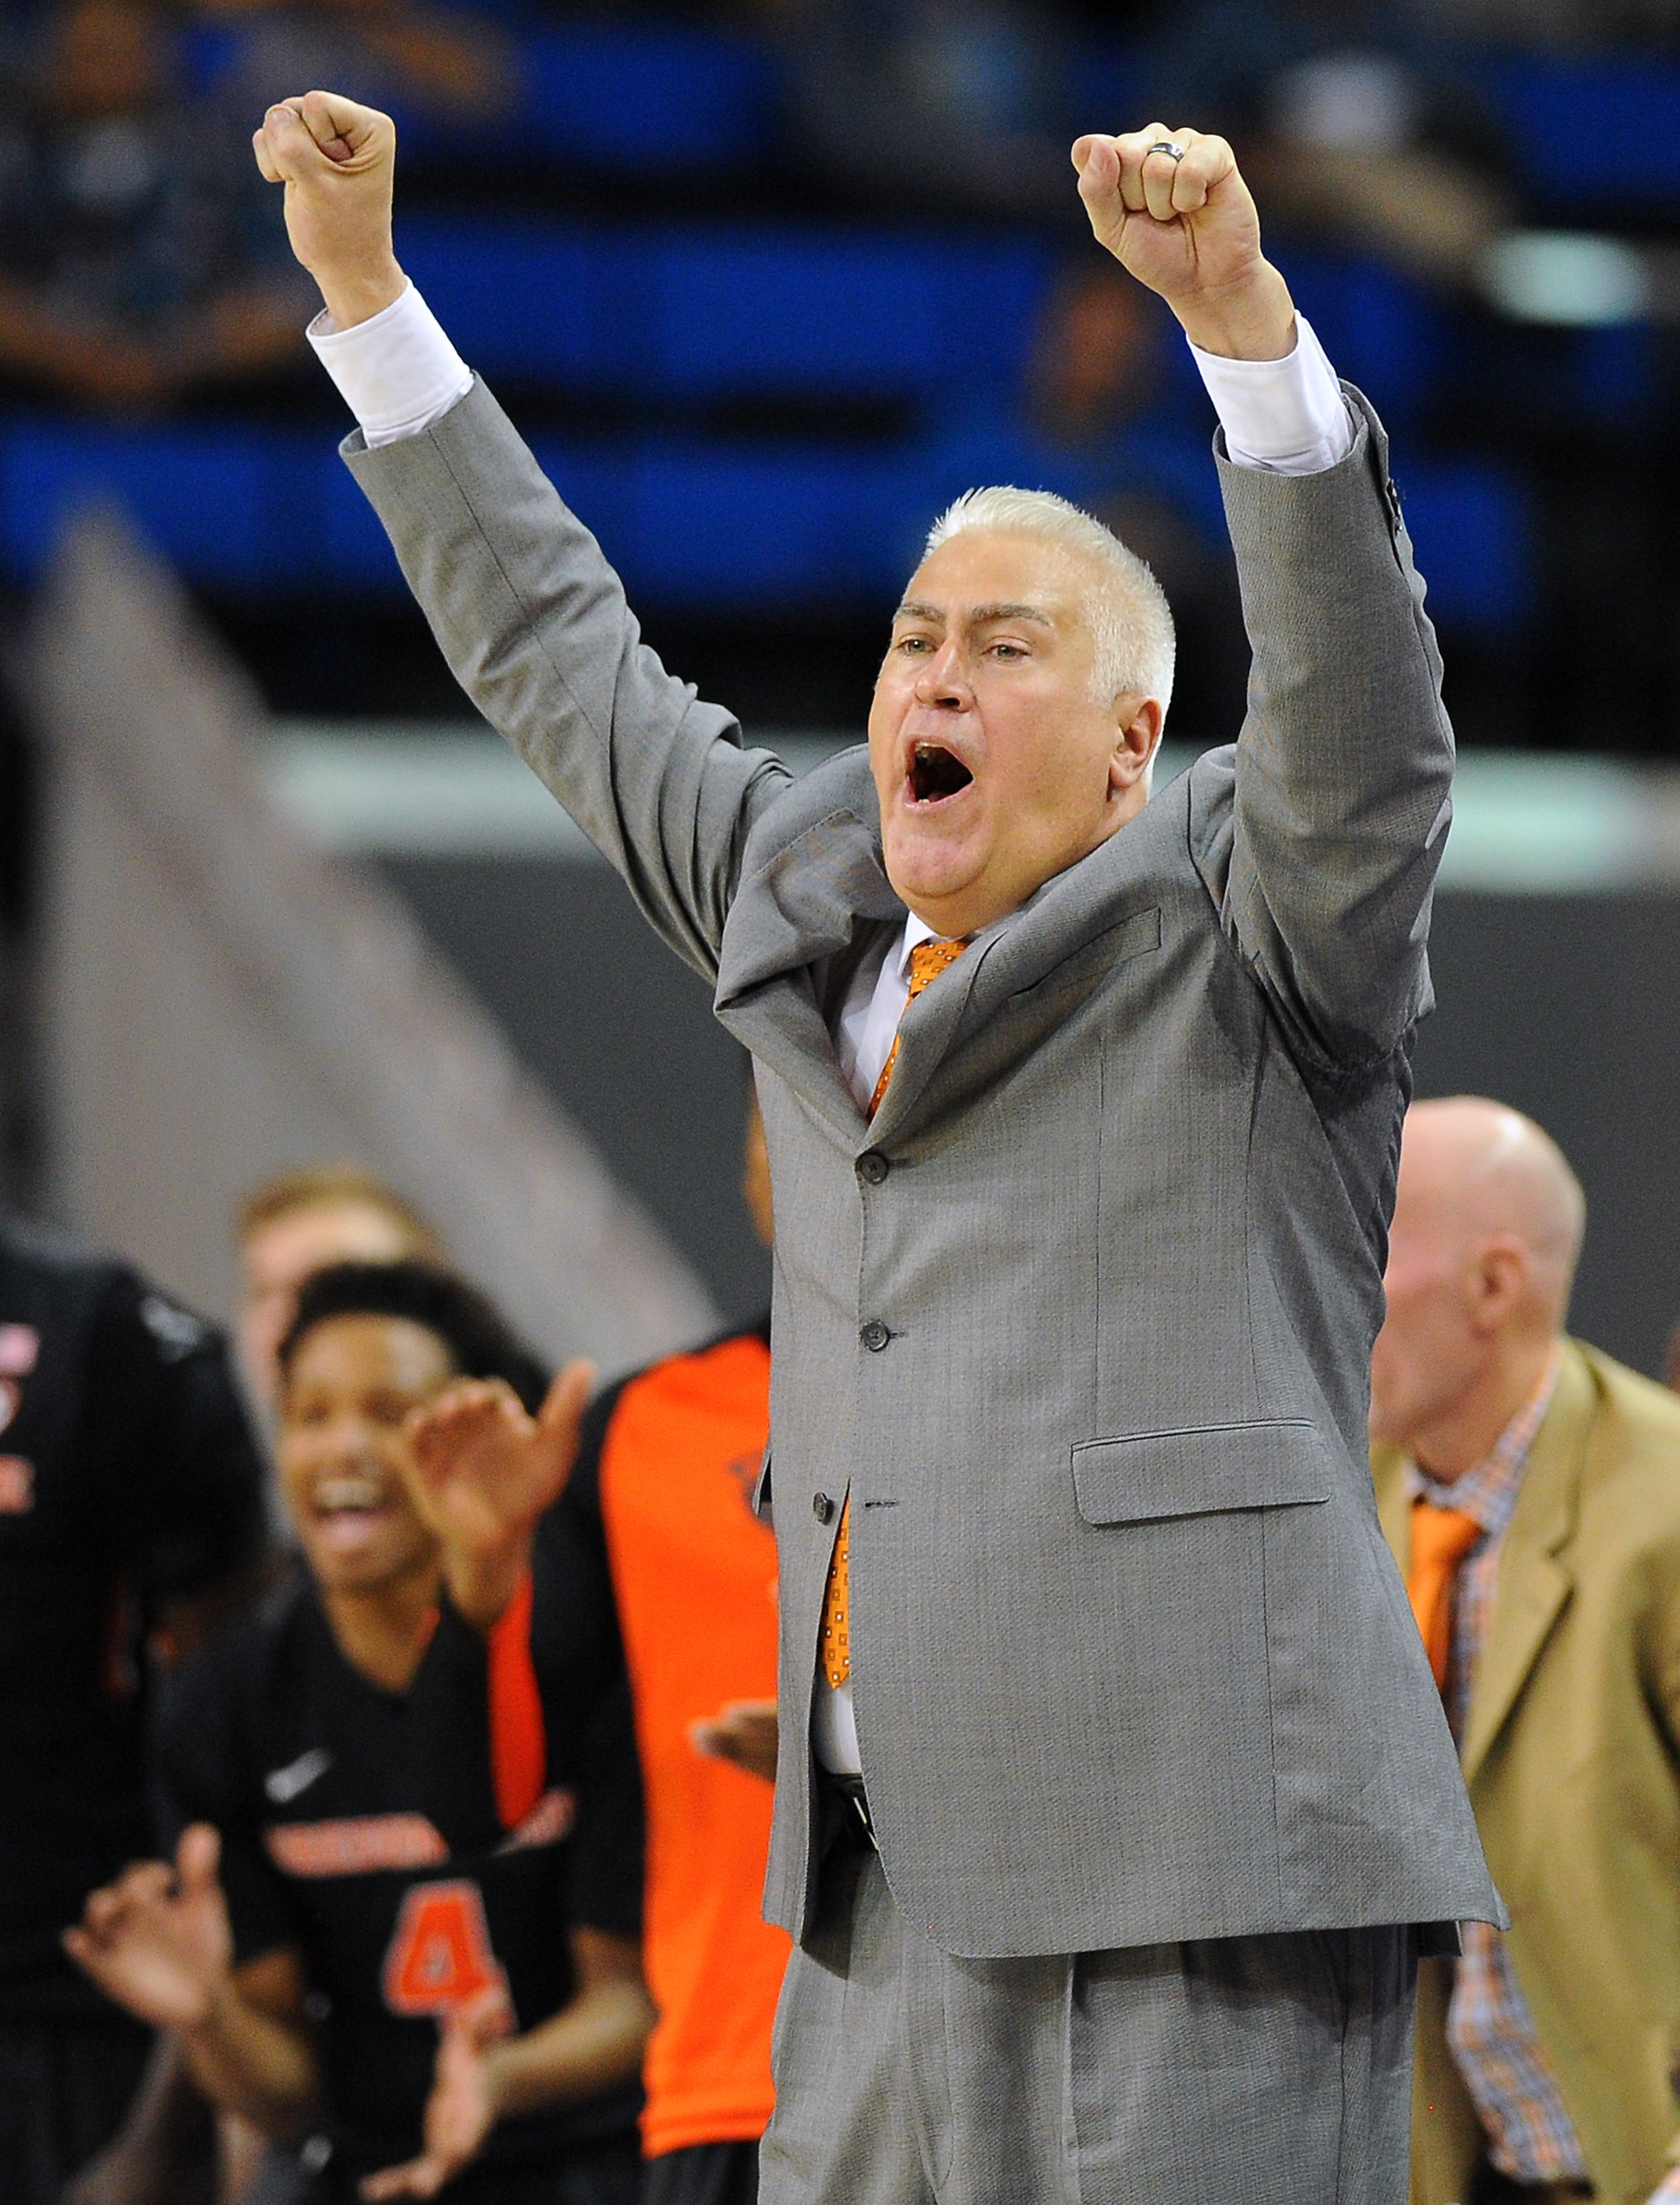 FILE - In this March 5, 2016, file photo, Oregon State head coach Wayne Tinkle reacts after his team builds a lead against UCLA at an NCAA college basketball game in Los Angeles. Just two seasons ago, Oregon State was in such disarray that new head coach